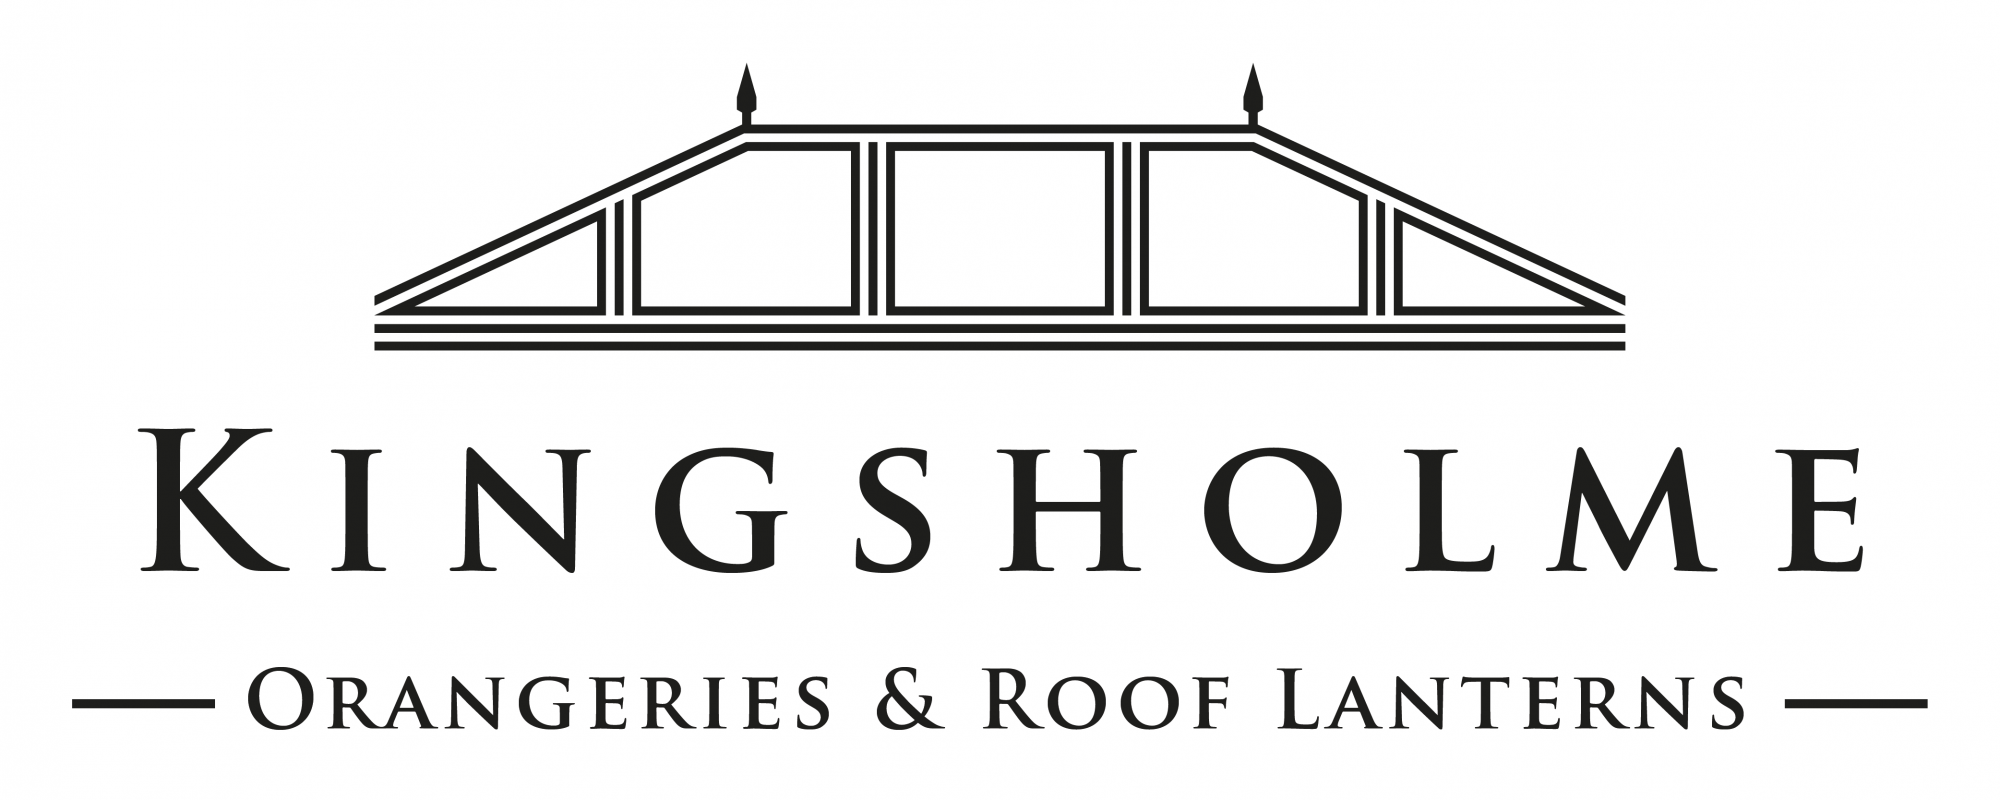 Planning - Orangeries & Roof Lanterns by Kingsholme